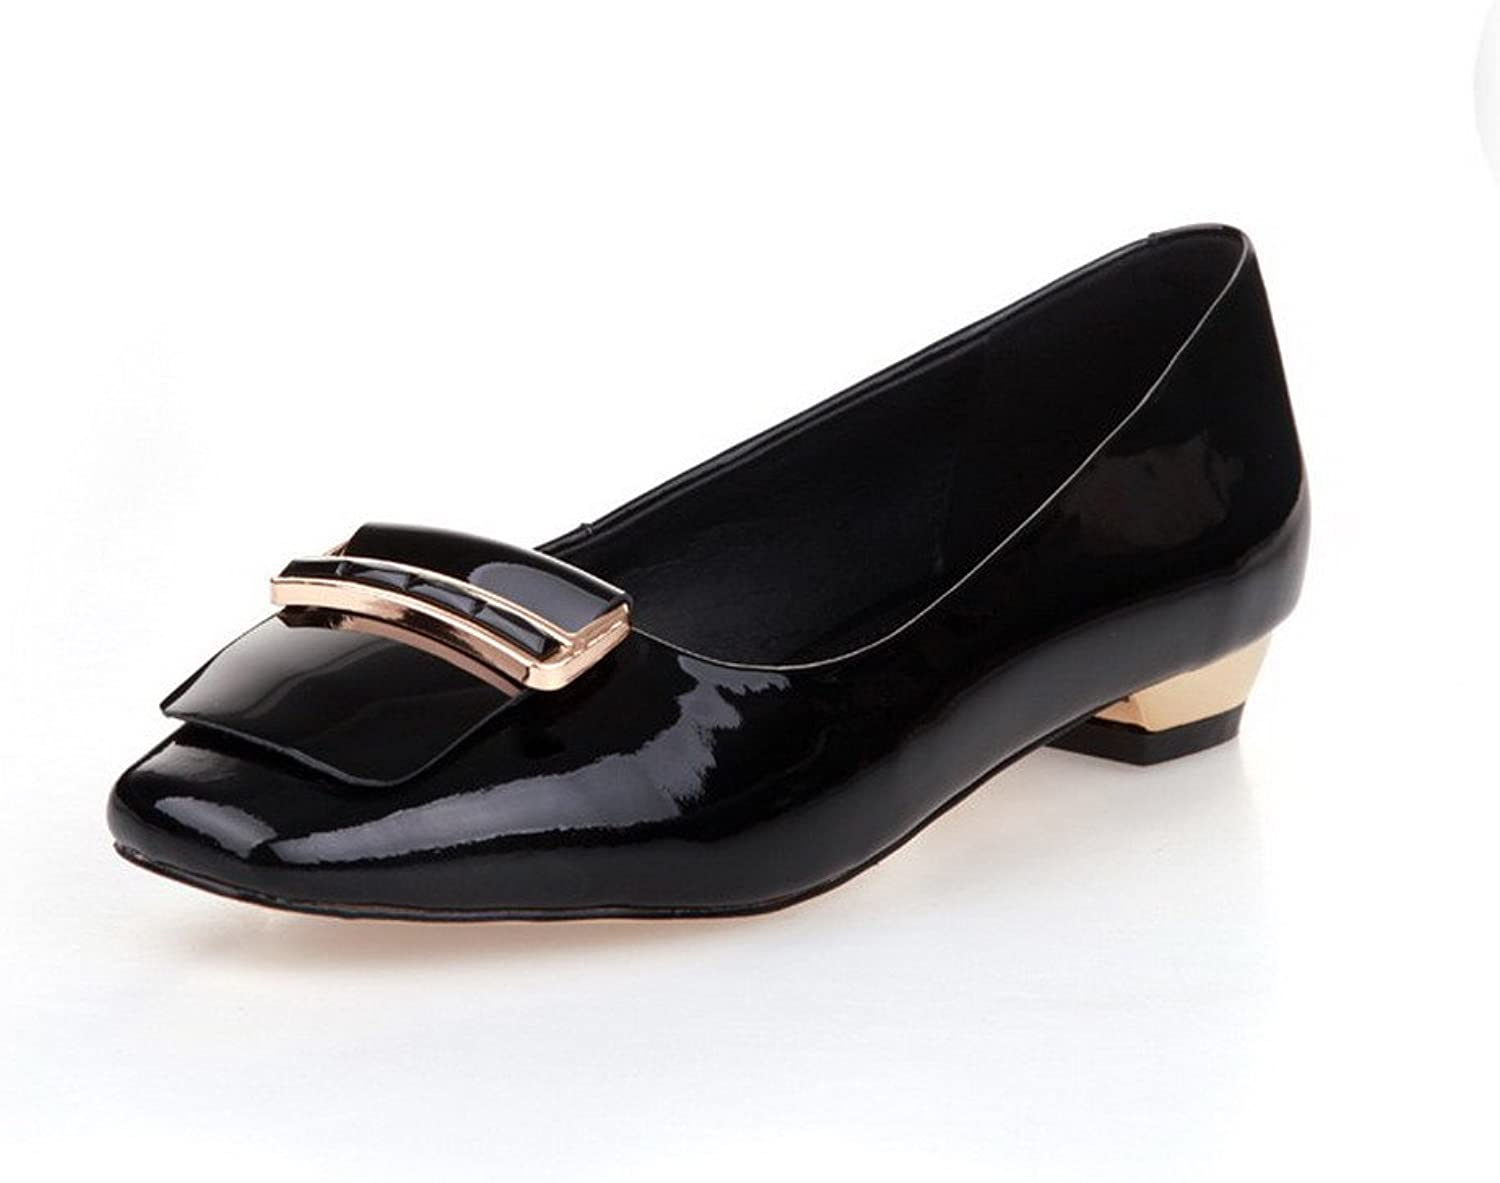 AllhqFashion Women's Closed Square Toe Low Heels Patent Leather Solid Pumps with Doug shoes